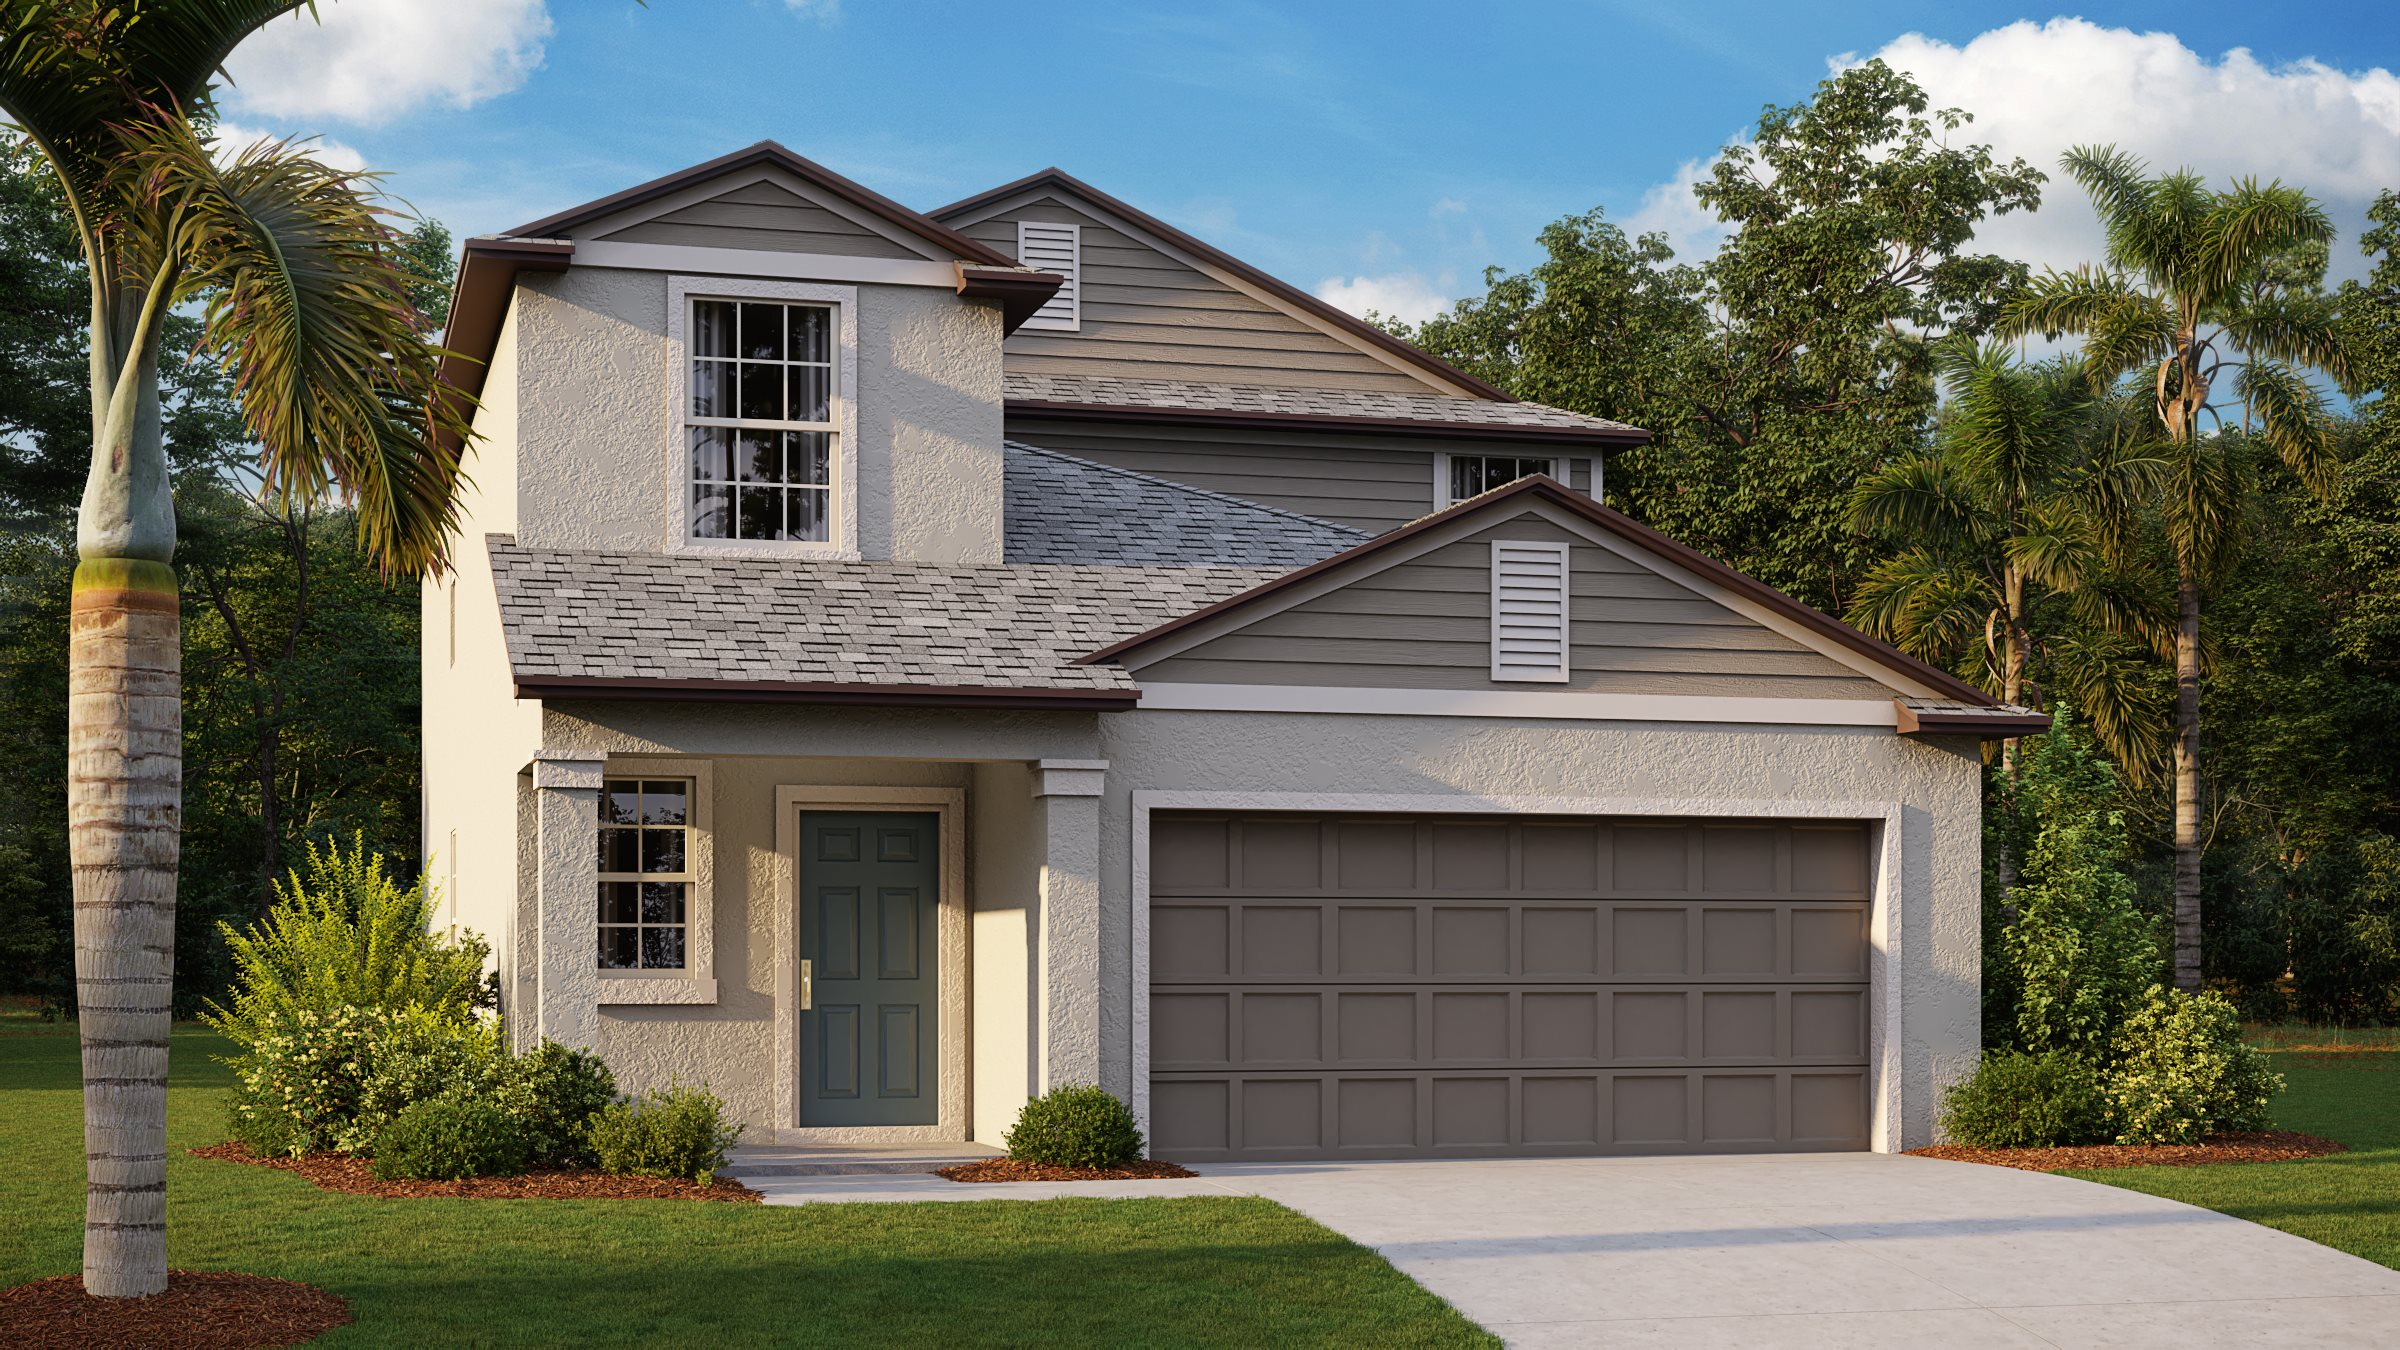 Hawks Glen Manors New Home Community Ruskin Florida